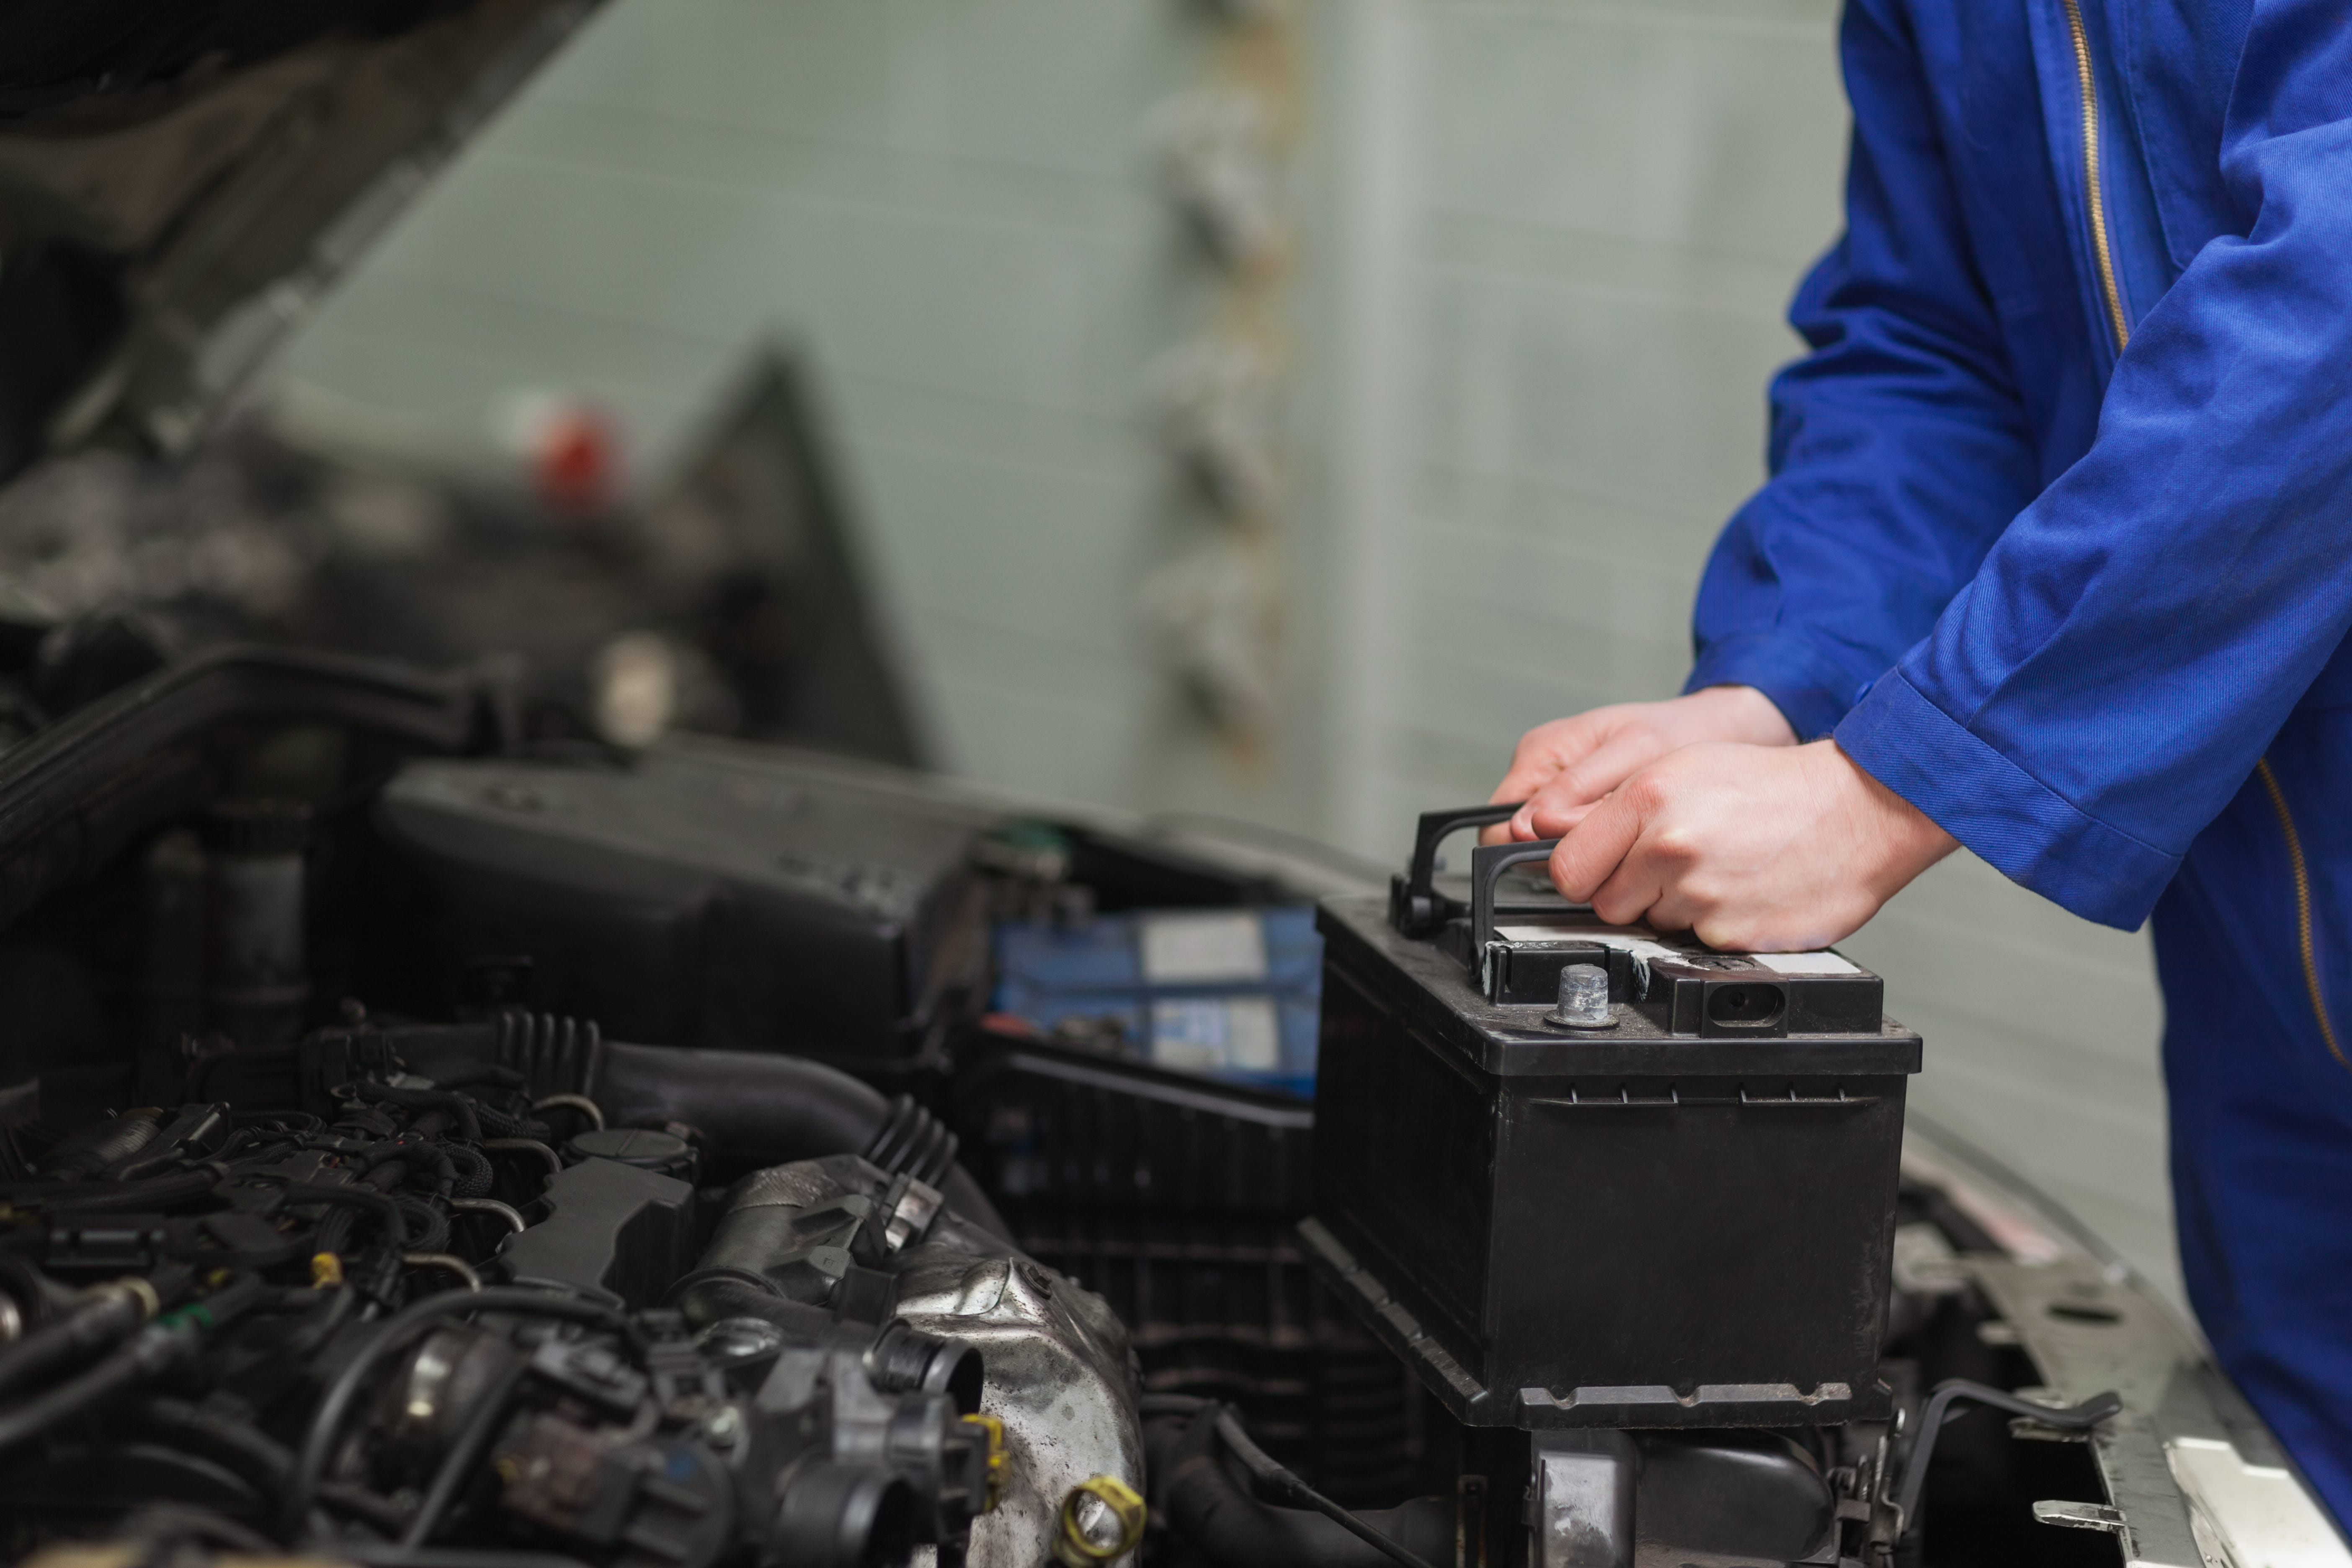 How To Charge A Car Battery Help Advice Centre Rac Shop Tachometer Wiring Diagram Batteries Are Reliable And Affordable Providing Drivers Will Range Of That Suit Your Vehicles Performances Needs As Well